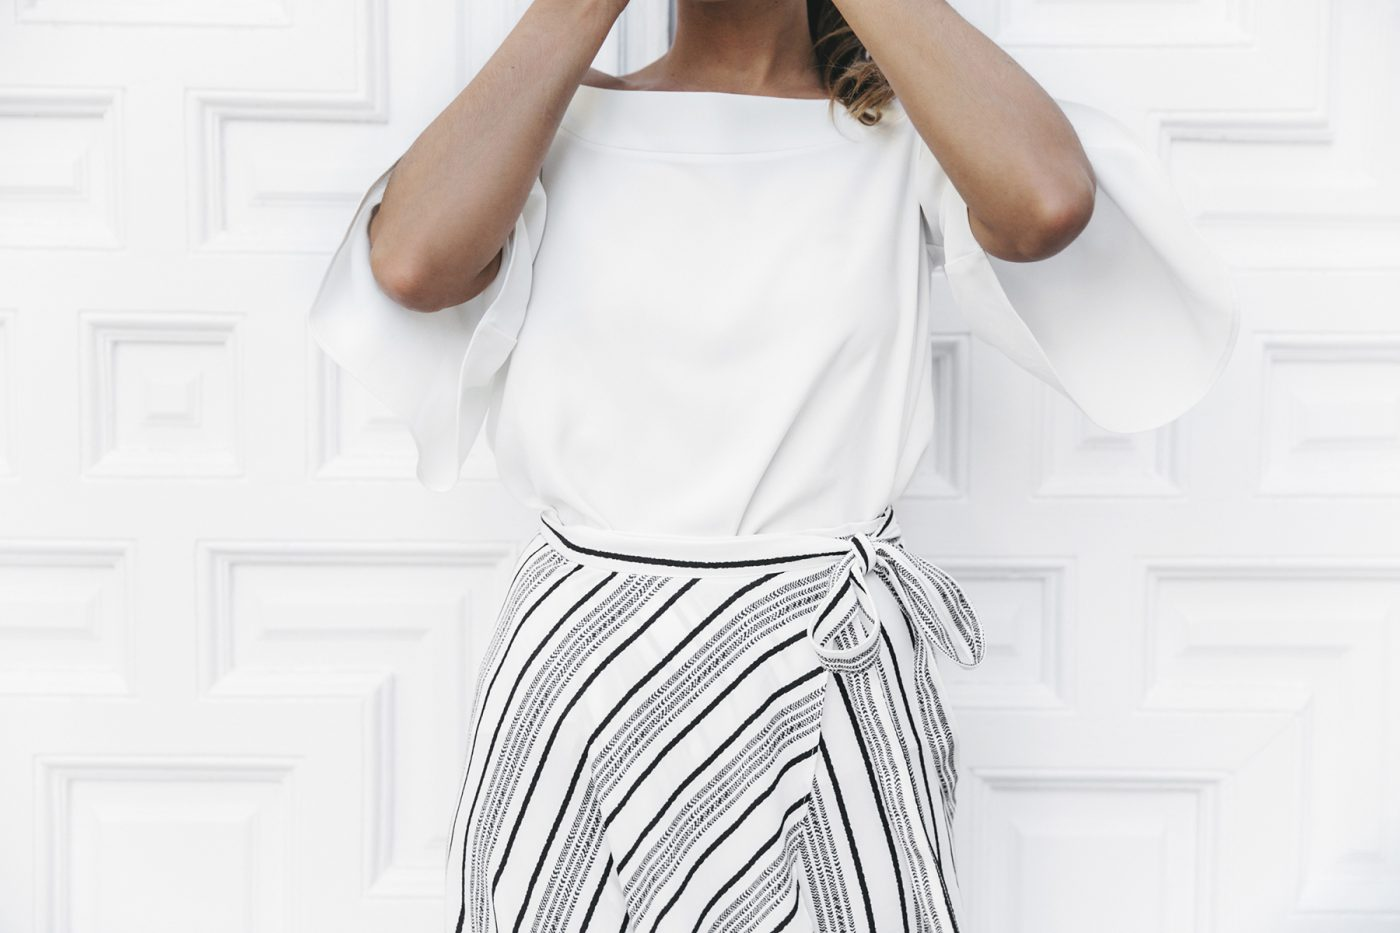 River_Island-El_Imparcial-Striped_SKirt-Off_Shoulders_Top-Lace_Up_Sandals-CHanel_Vintage_Bag-52